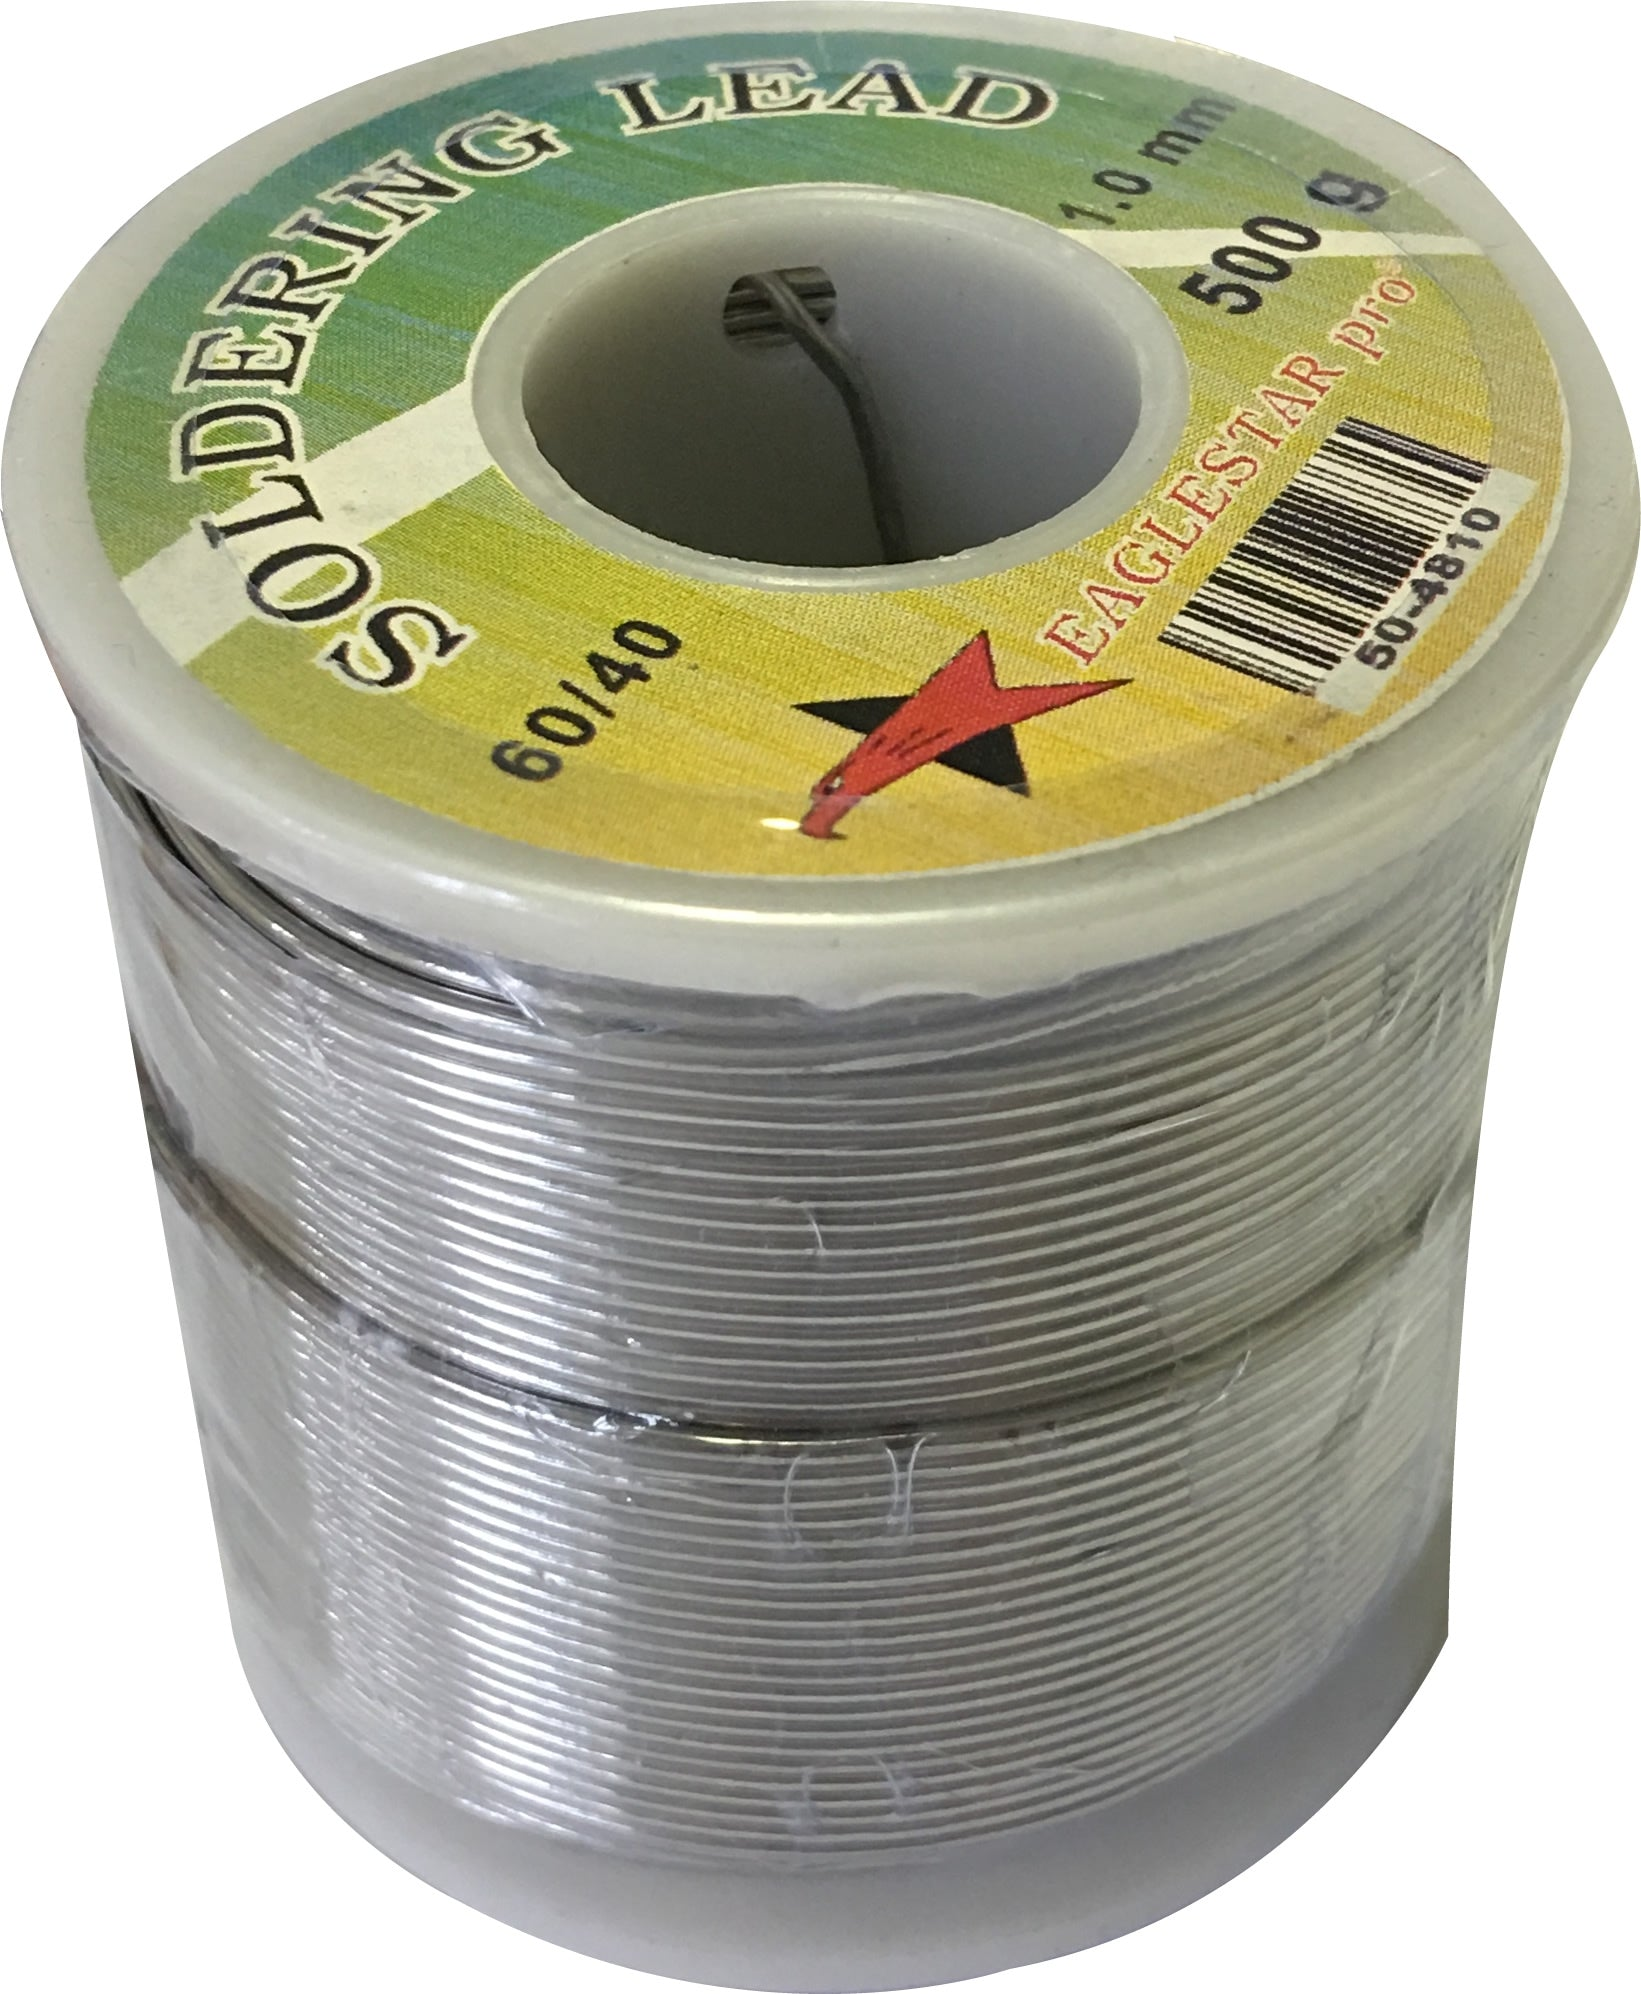 50-4810 Soldering Wire Roll Size 1mm 500g 60%Sn